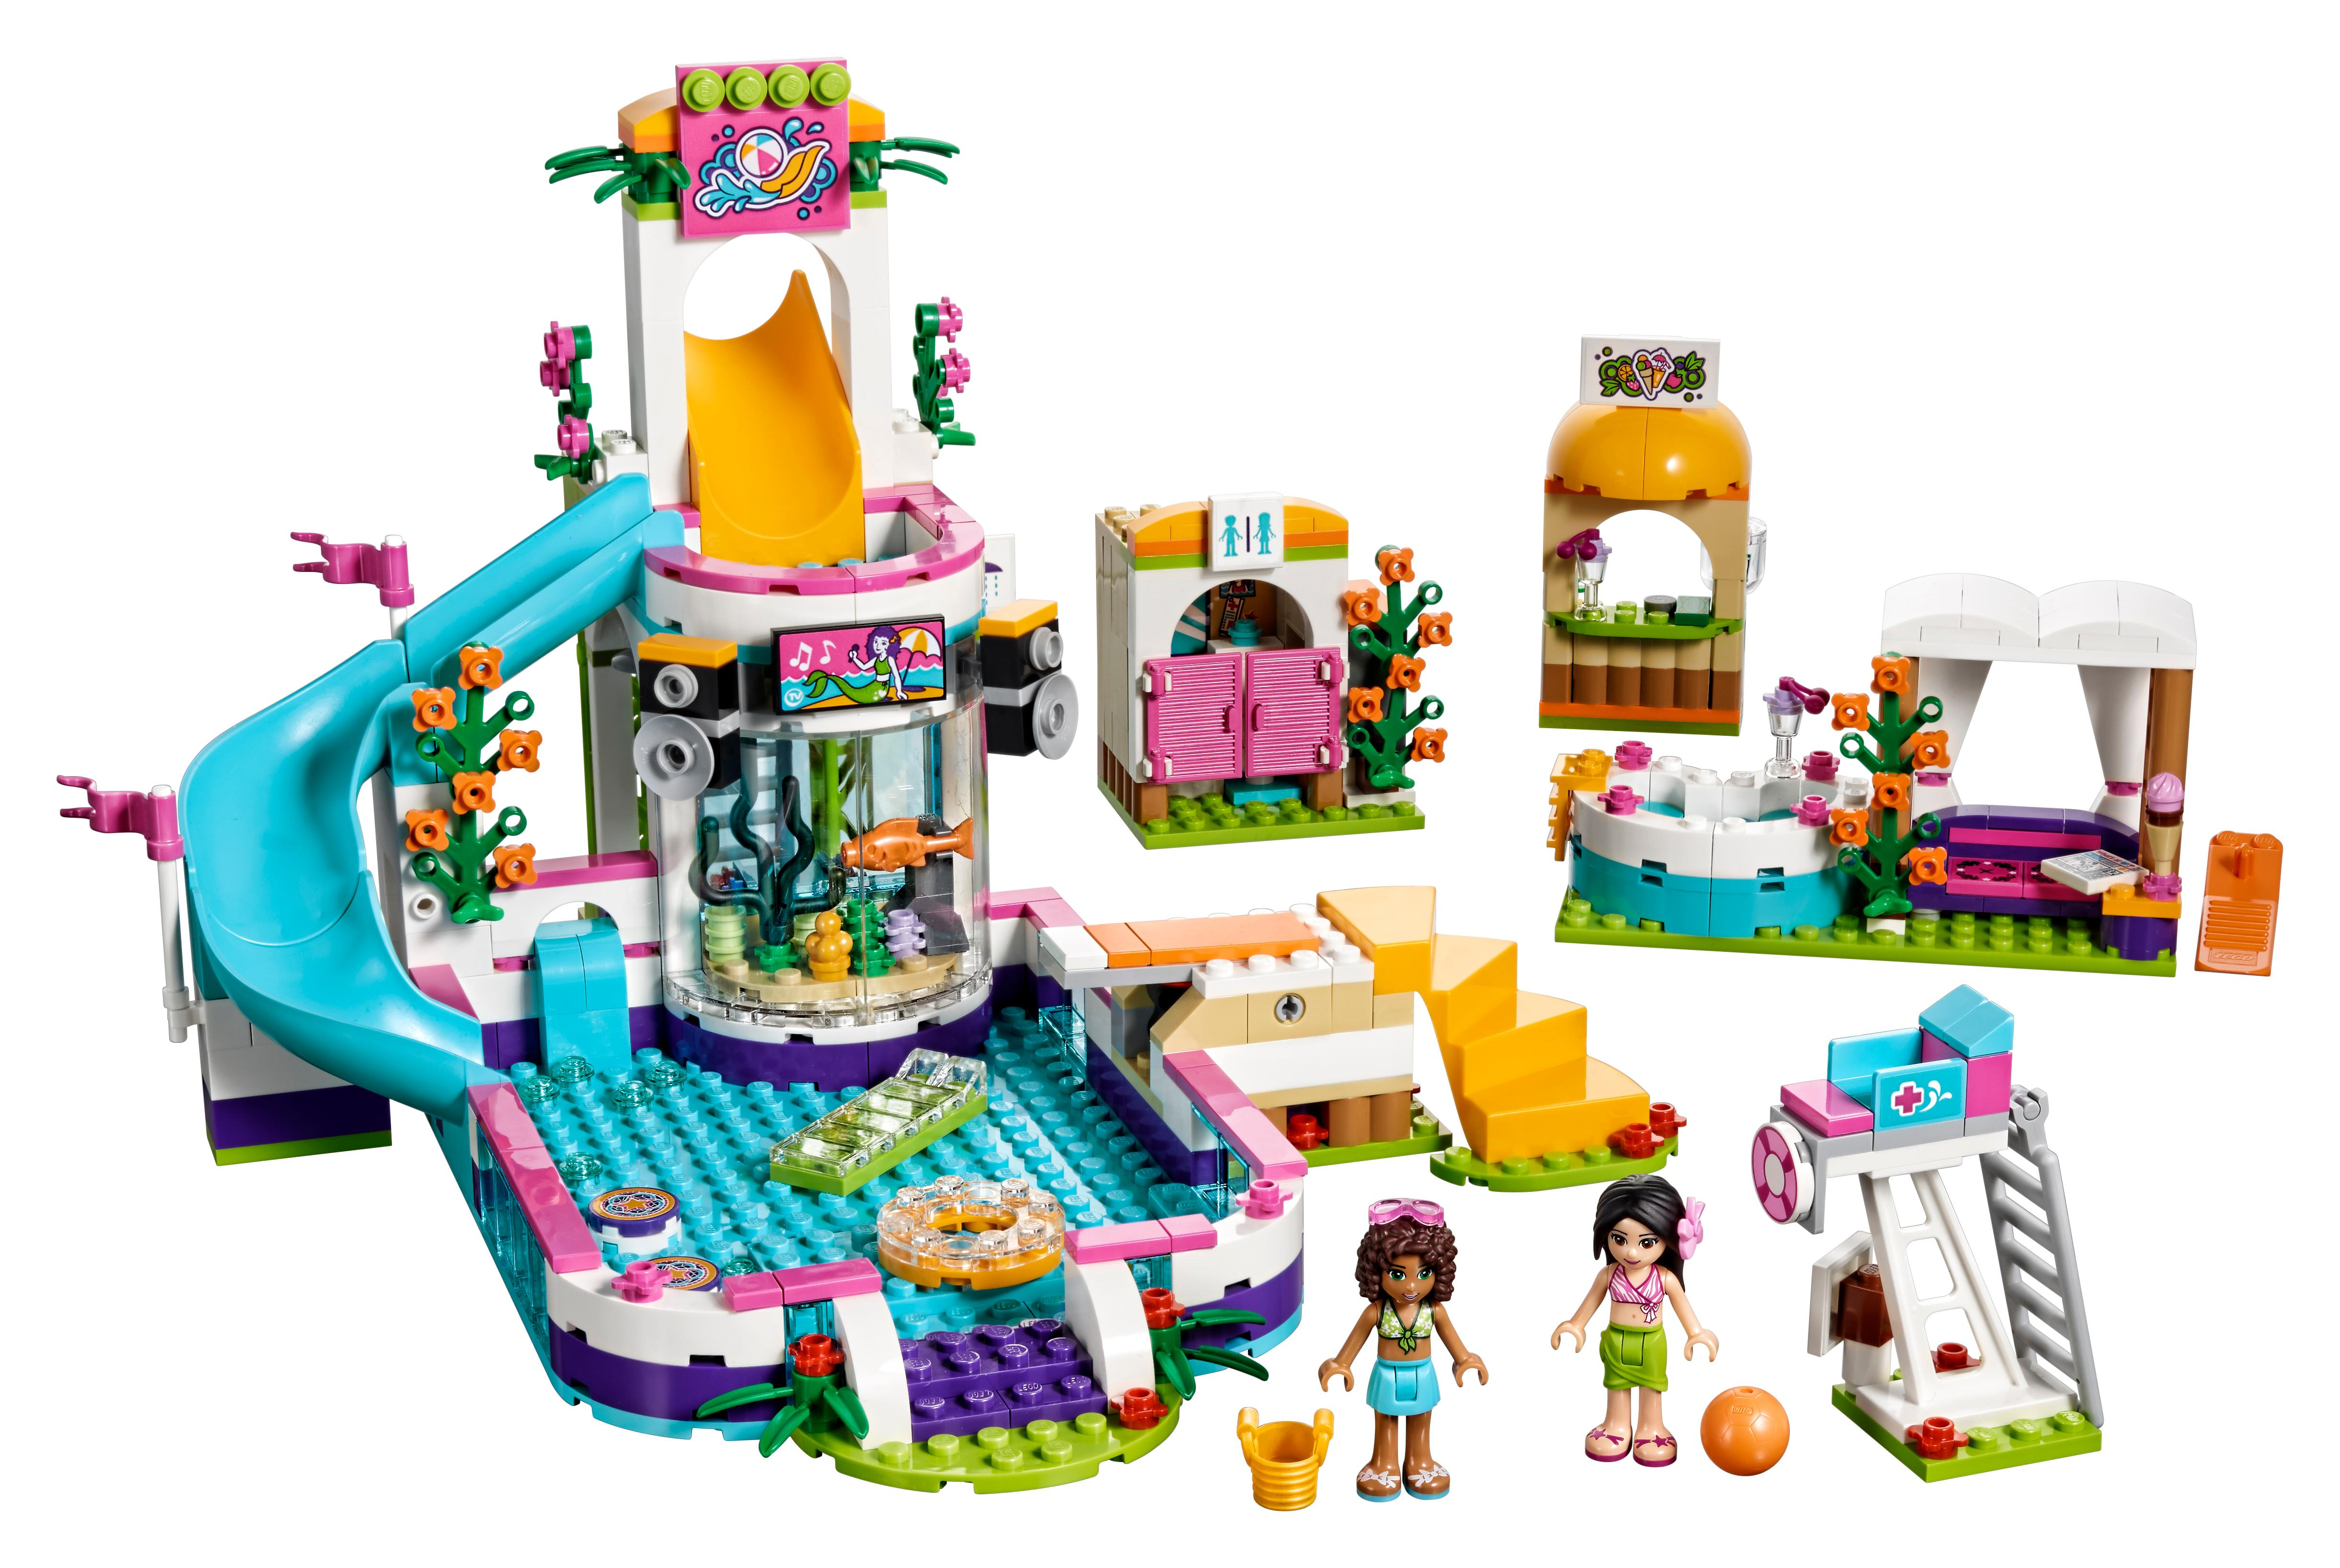 1 Toy For Ages 1 To 7 : Amazon lego friends heartlake summer pool new